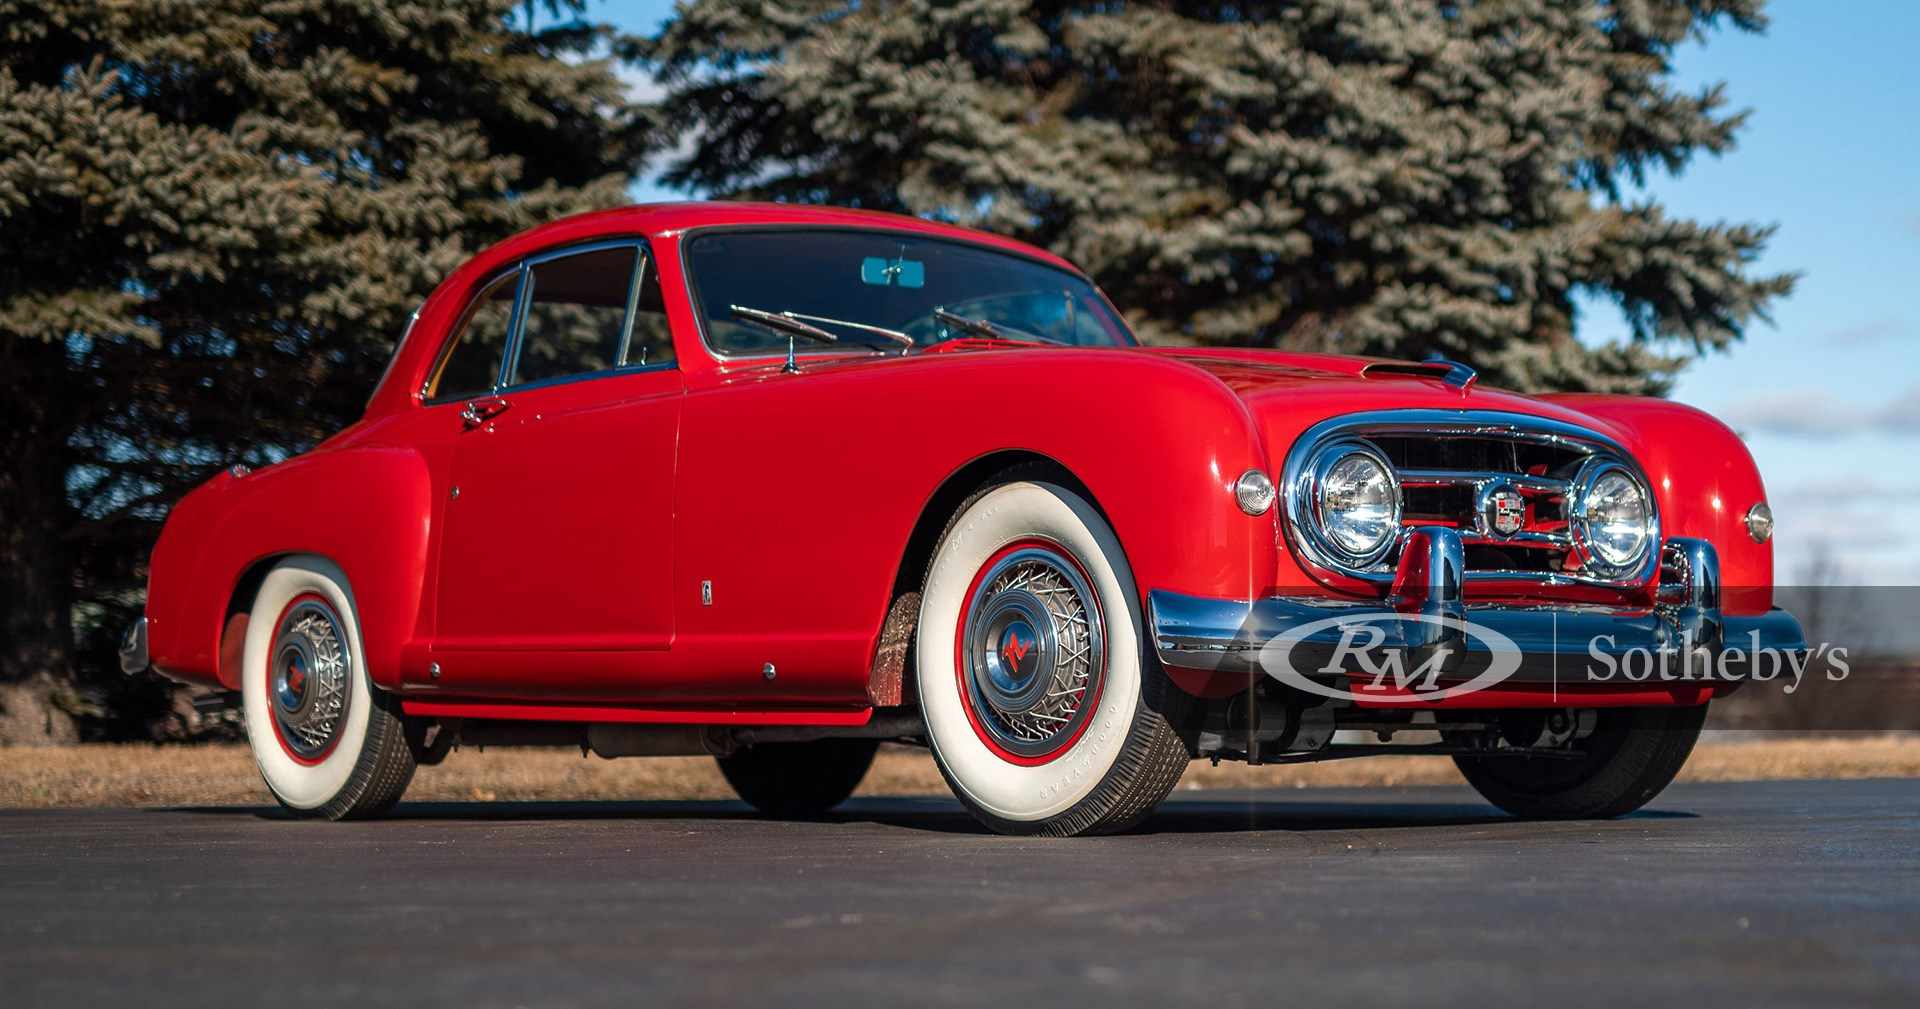 1953 Nash-Healey Le Mans Coupe by Pinin Farina available at RM Sotheby's Online Only Open Roads April Auction 2021